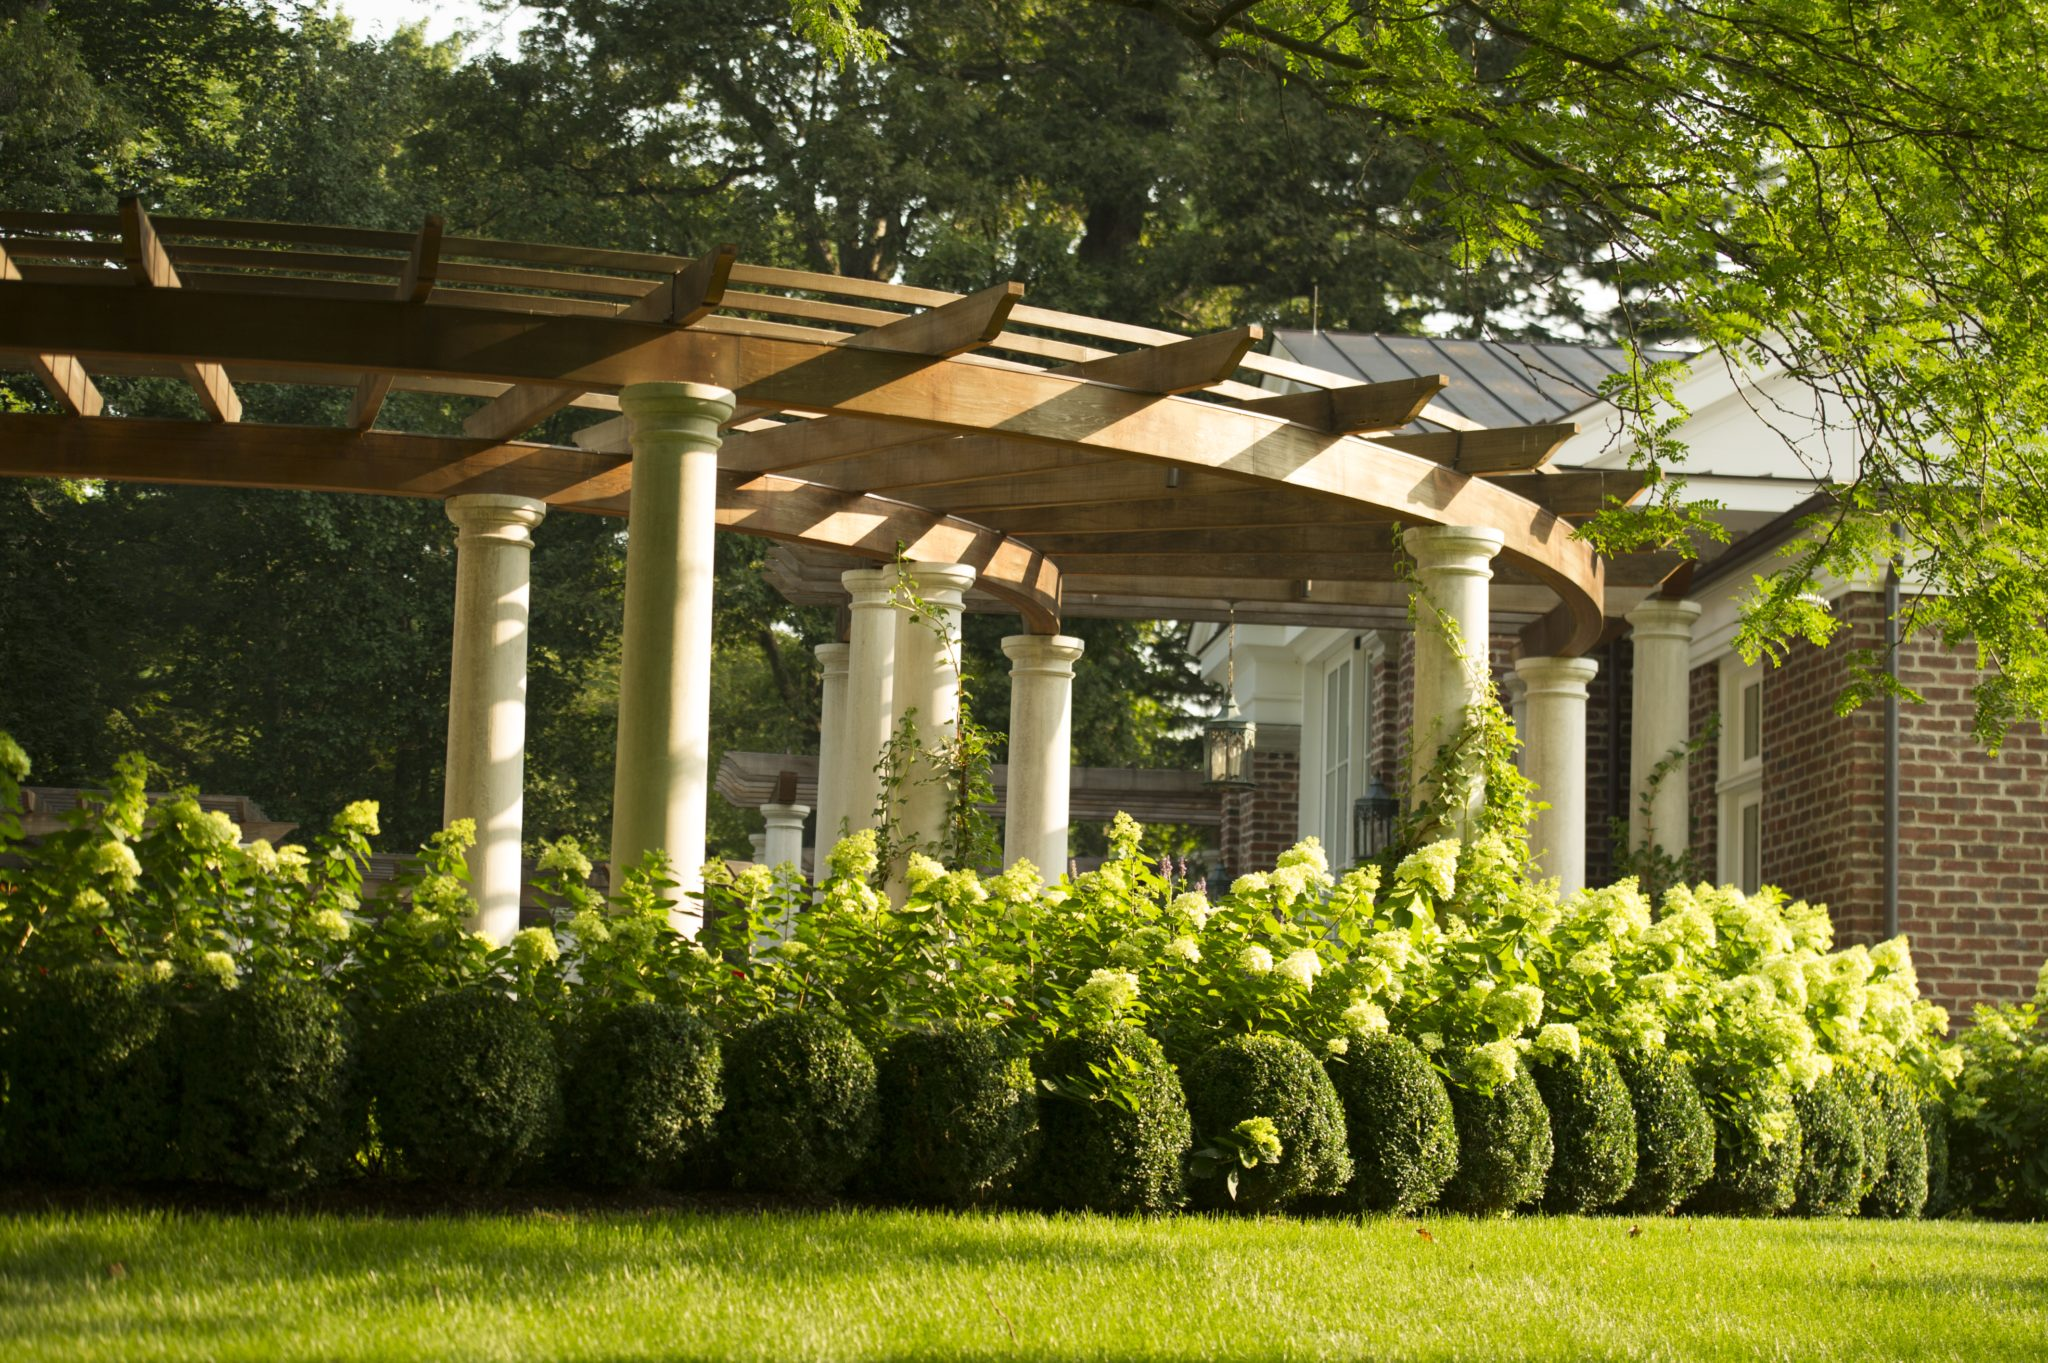 The lower curved pergola sections create intimate spaces. by Janice Parker Landscape Architects